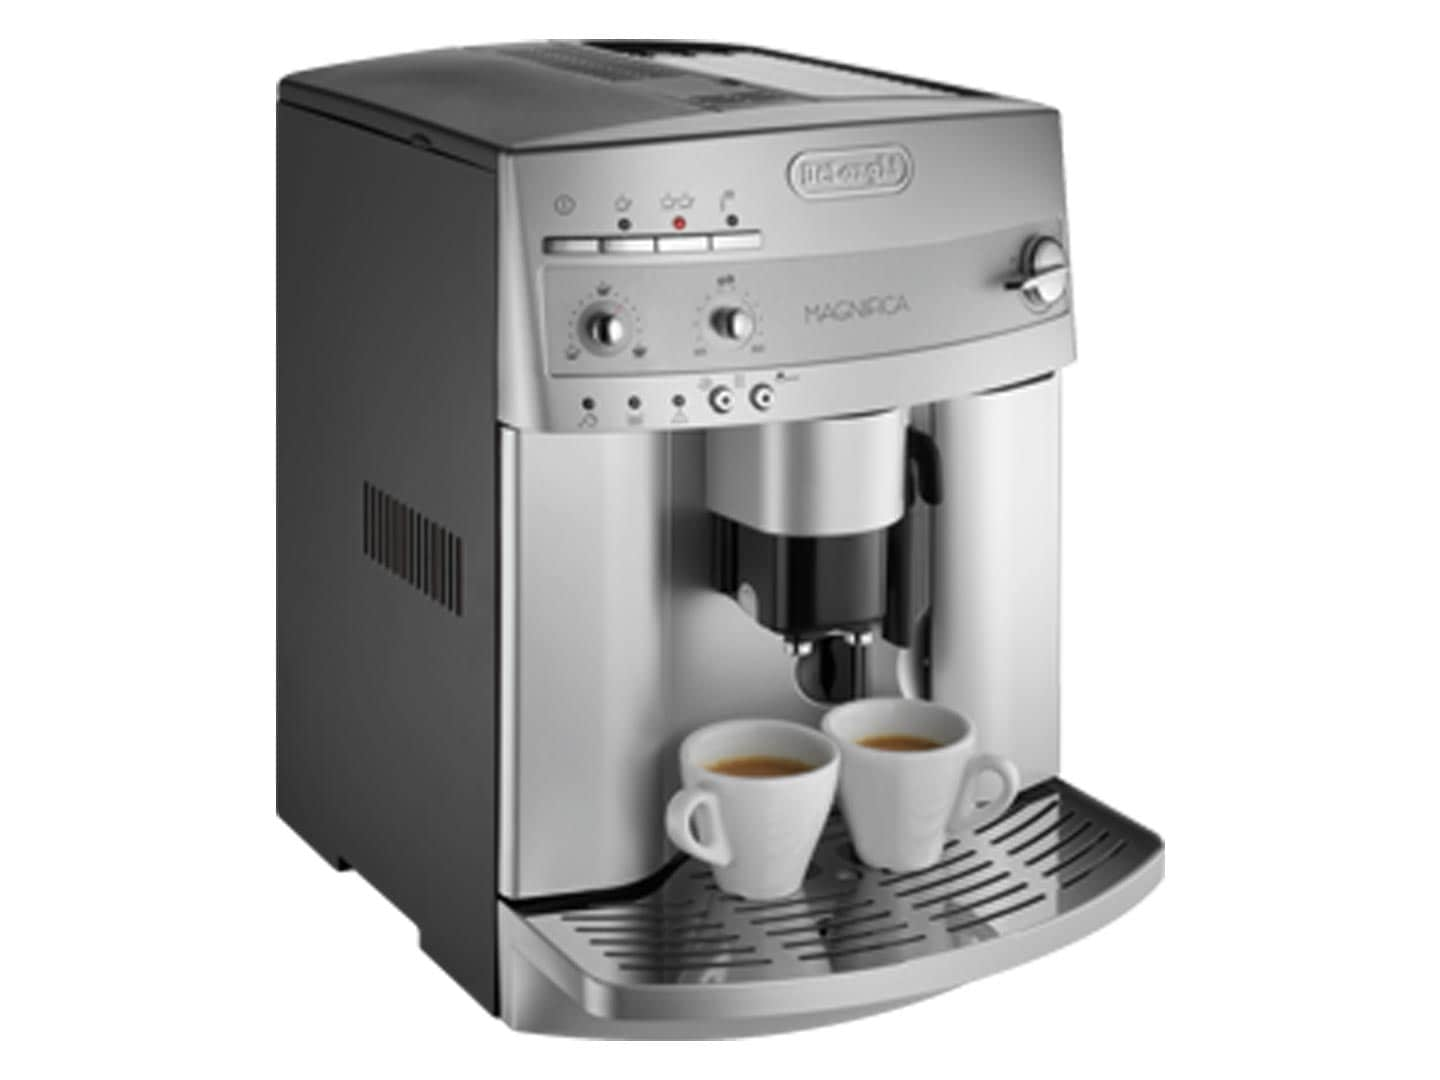 Coffee Maker Clean Button : Best-Rated Super Automatic Espresso Coffee Machines For Home Use - Reviews And Ratings 2015 ...